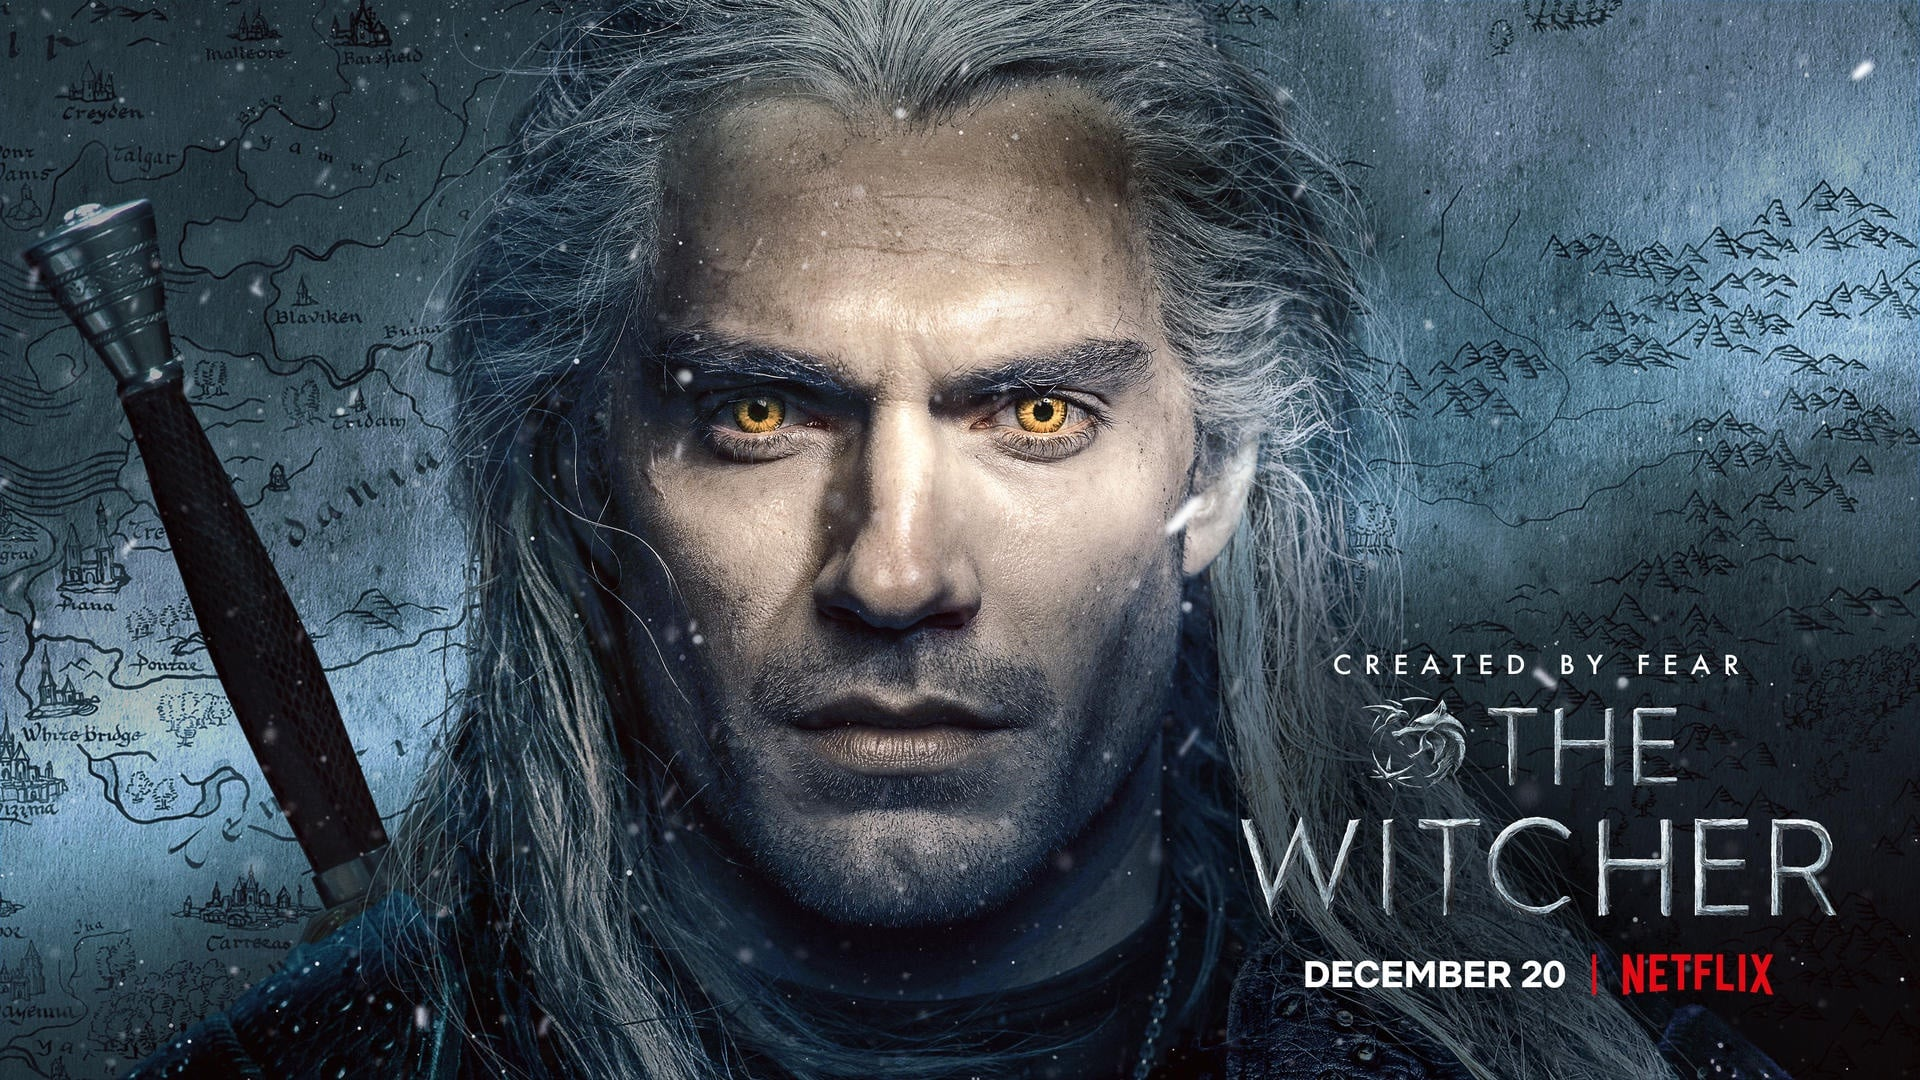 The Witcher Netflix series Henry Cavill The Witcher posters The Witcher Sword Fight Season 2